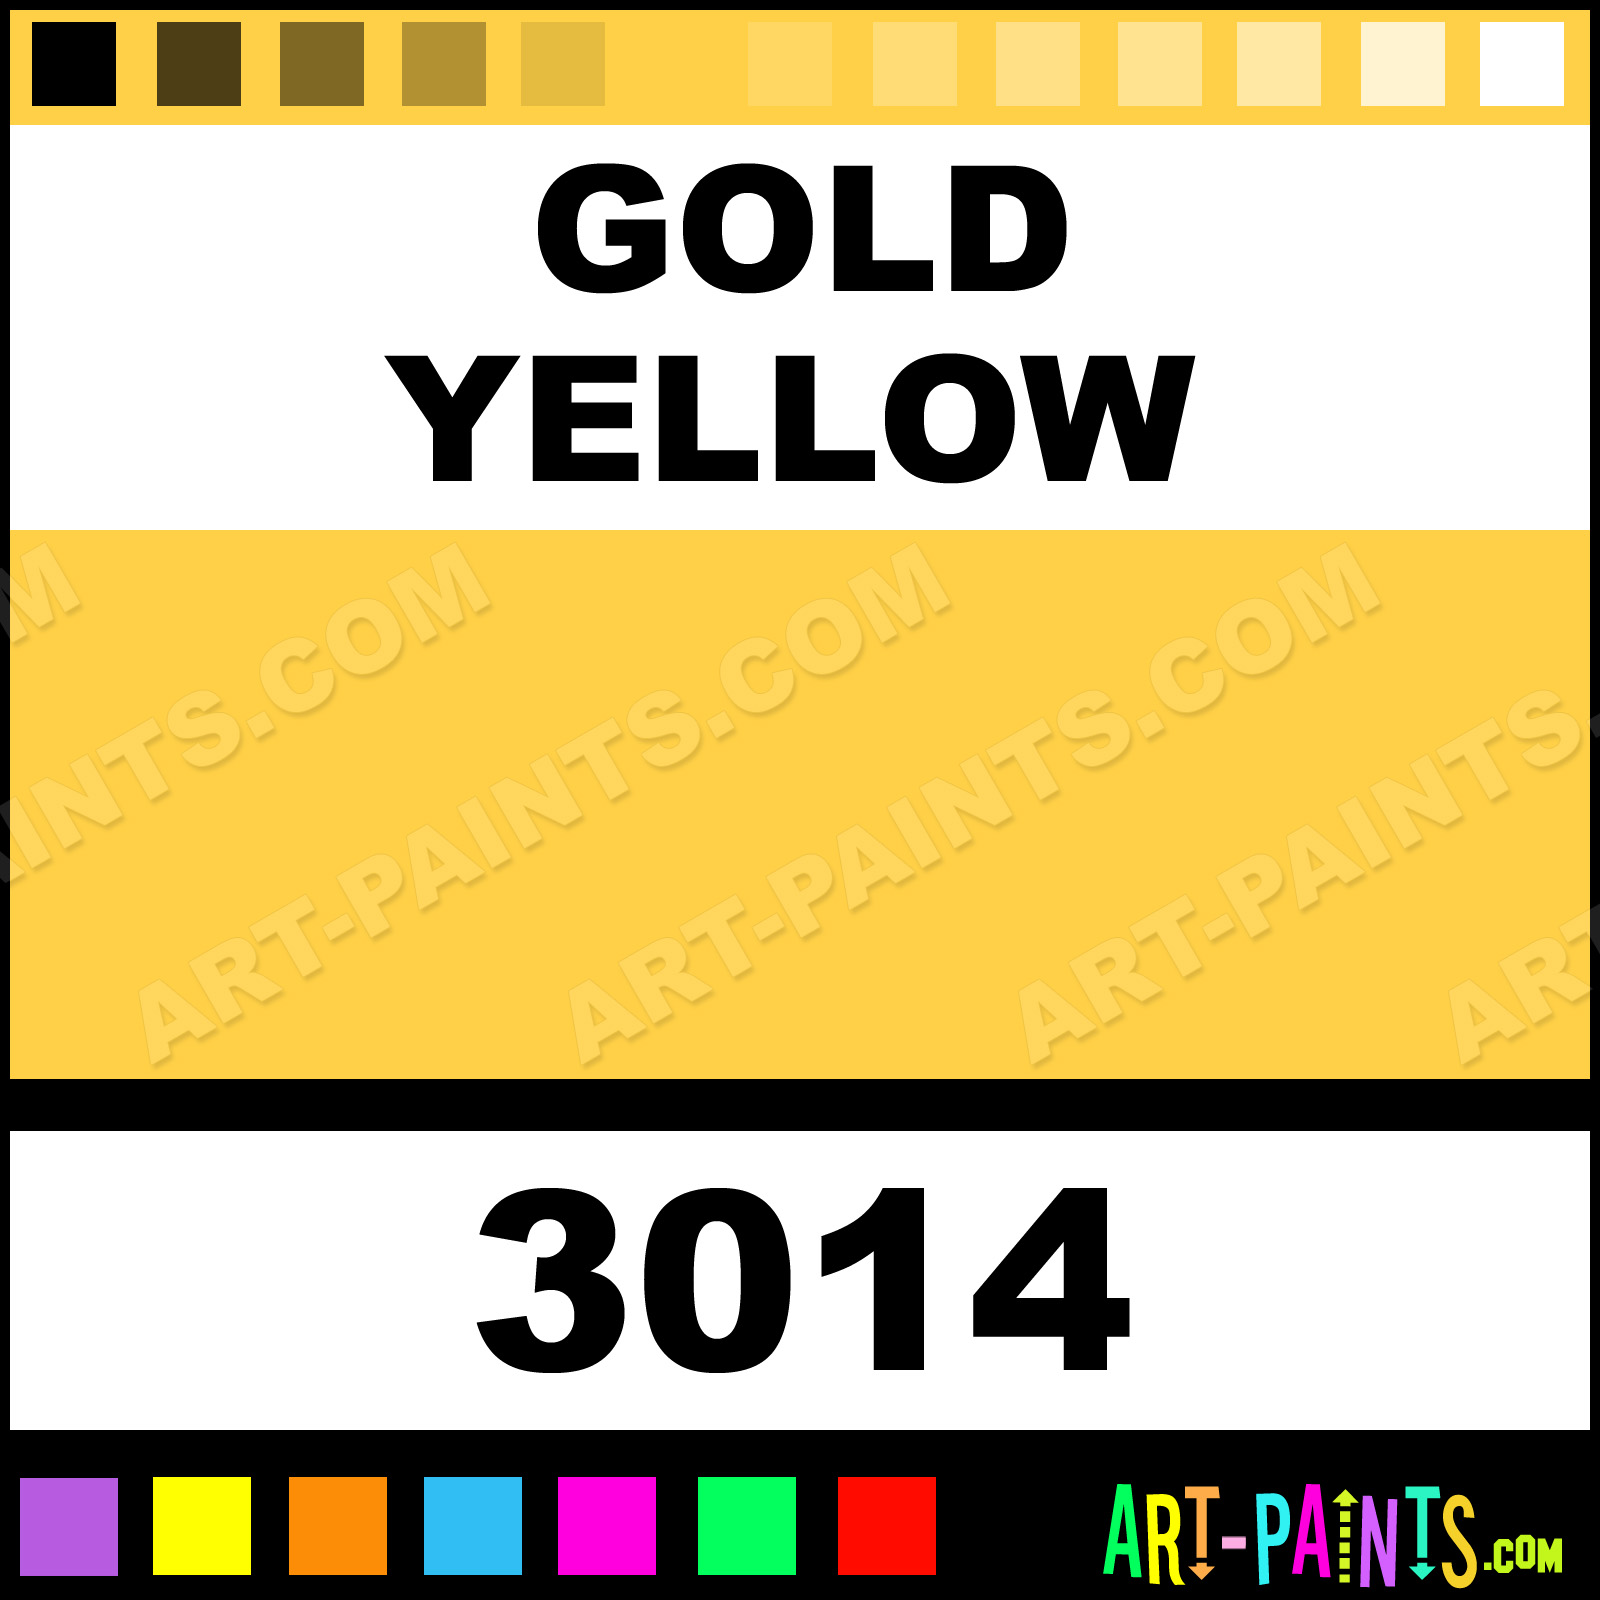 gold yellow glossy acrylic paints - 3014 - gold yellow paint, gold